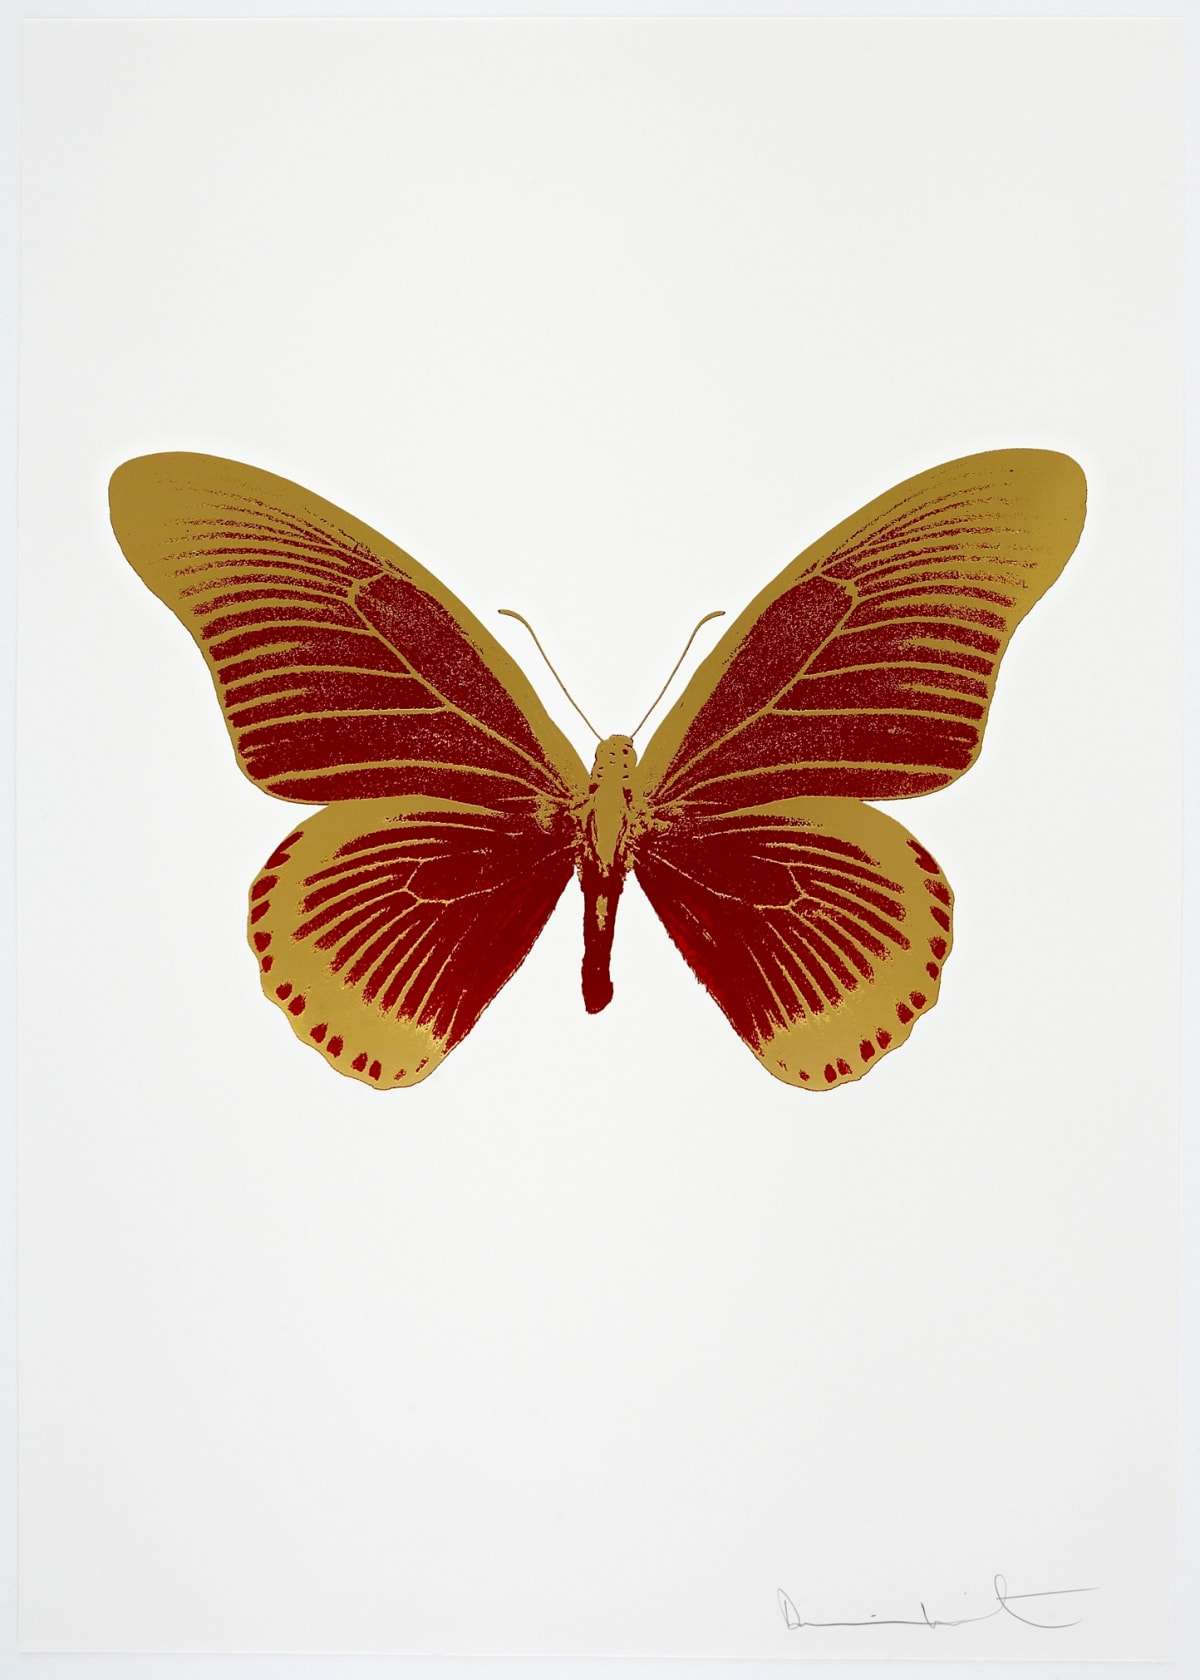 Damien Hirst The Souls IV - Chilli Red/Oriental Gold, 2010 2 colour foil block on 300gsm Arches 88 archival paper. Signed and numbered. Published by Paul Stolper and Other Criteria 72 x 51cm OC8009 / 1418-32 Edition of 15